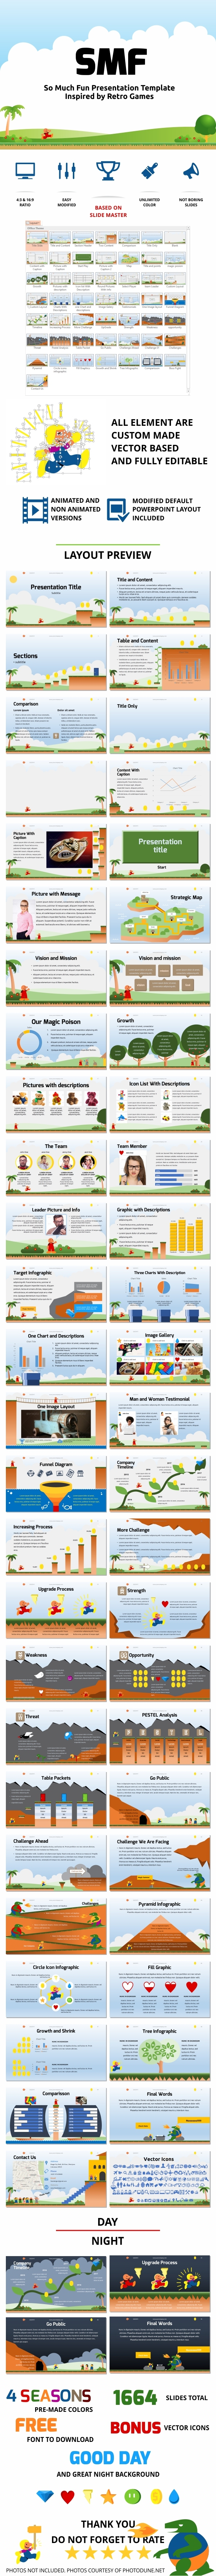 GraphicRiver SMF Powerpoint Presentation Template 10648810